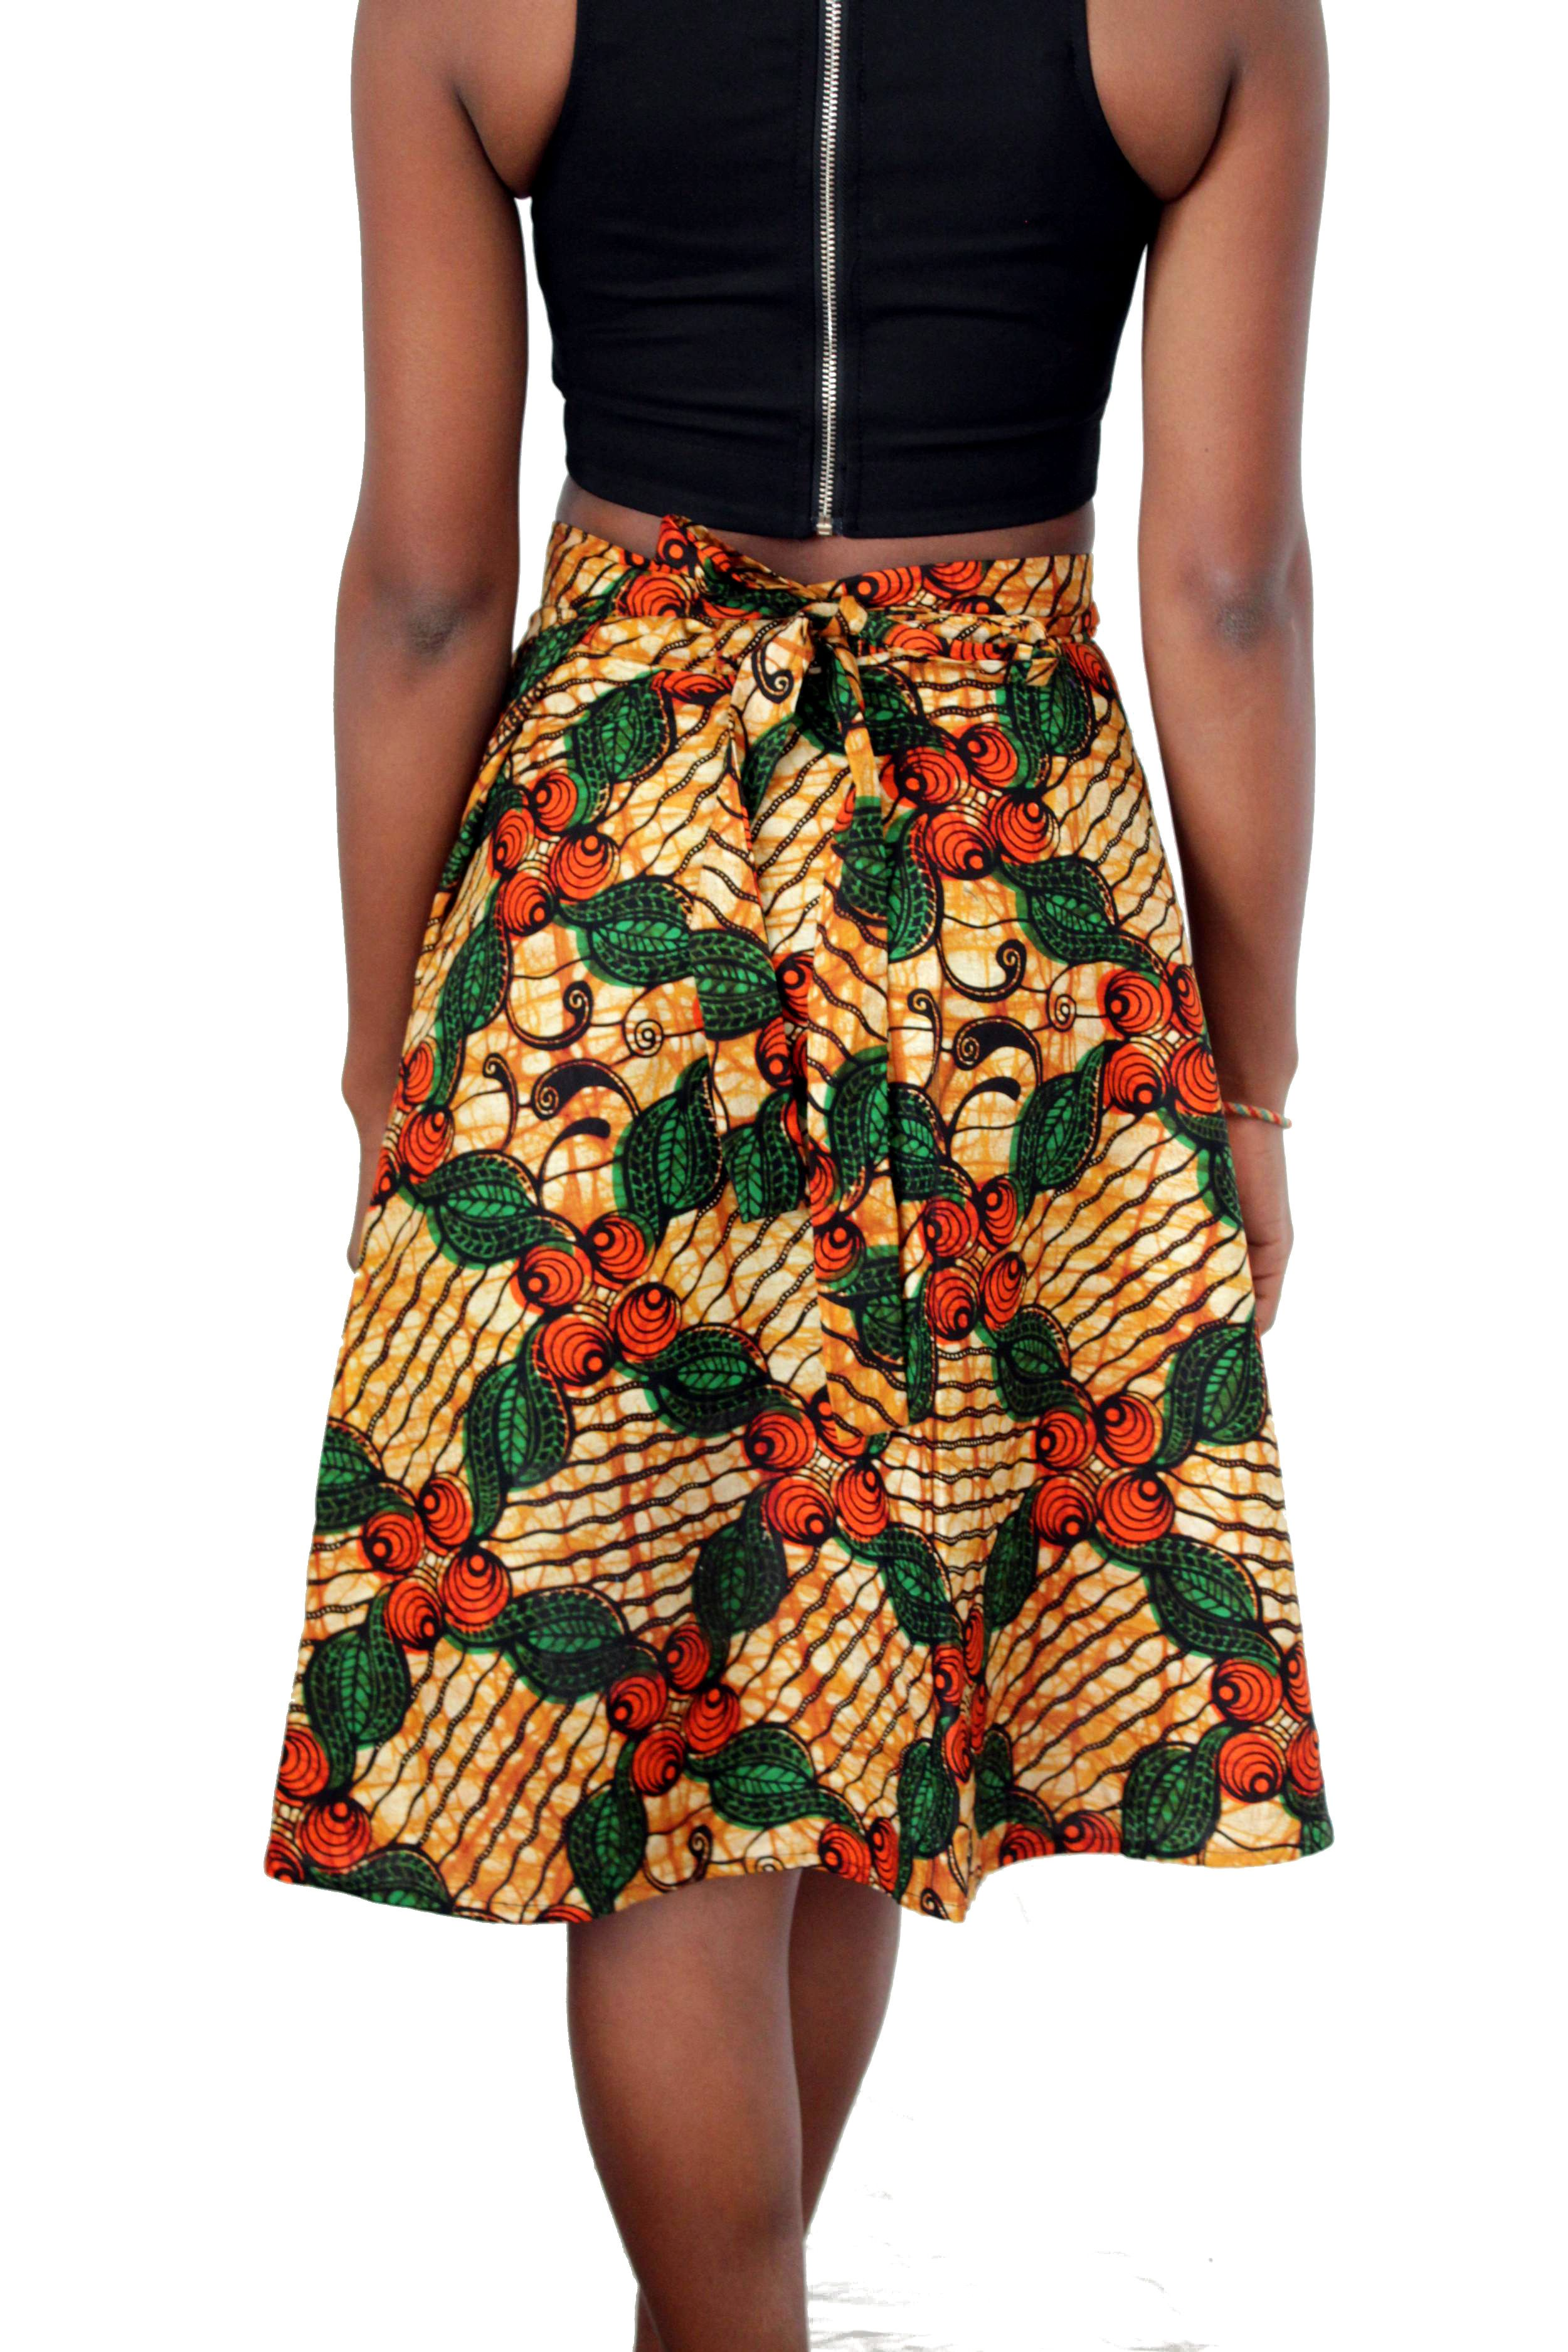 Wrap Skirt Short Skirts Short Skirts High Waisted Skirt